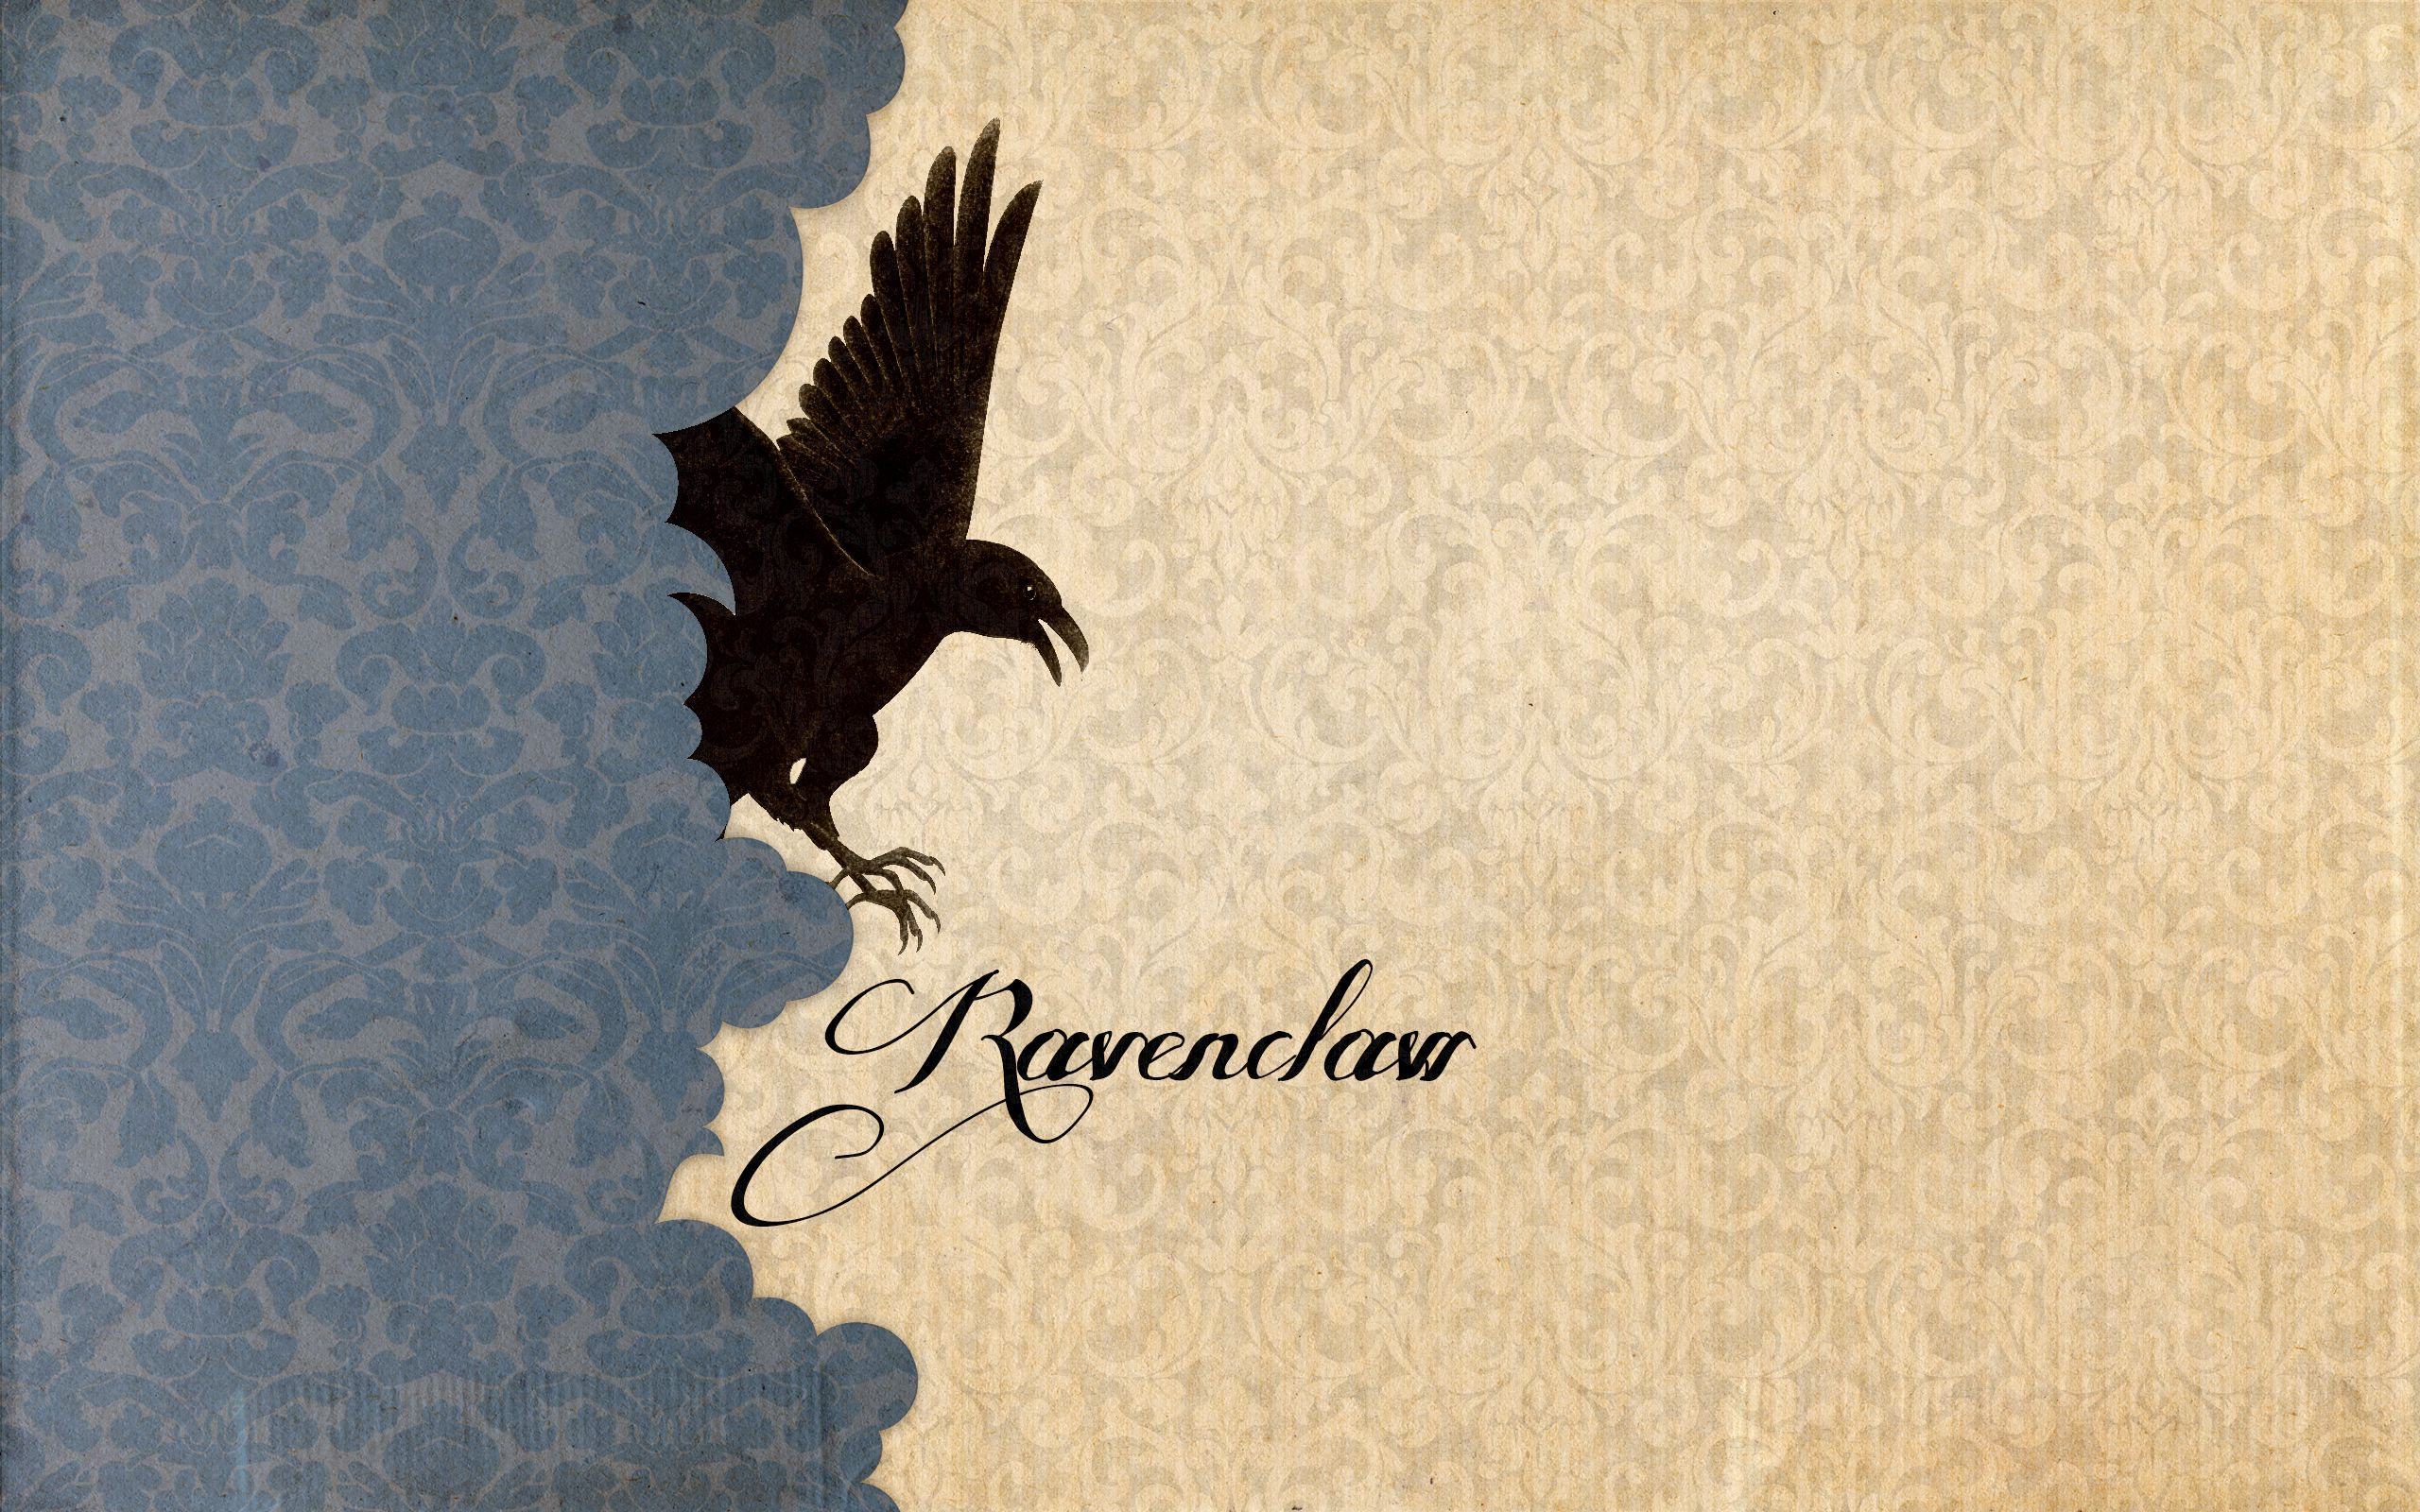 House Ravenclaw Hogwarts Harry Potter Wizarding World Potterve Harry Potter Wallpaper Backgrounds Desktop Wallpaper Harry Potter Harry Potter Wallpaper